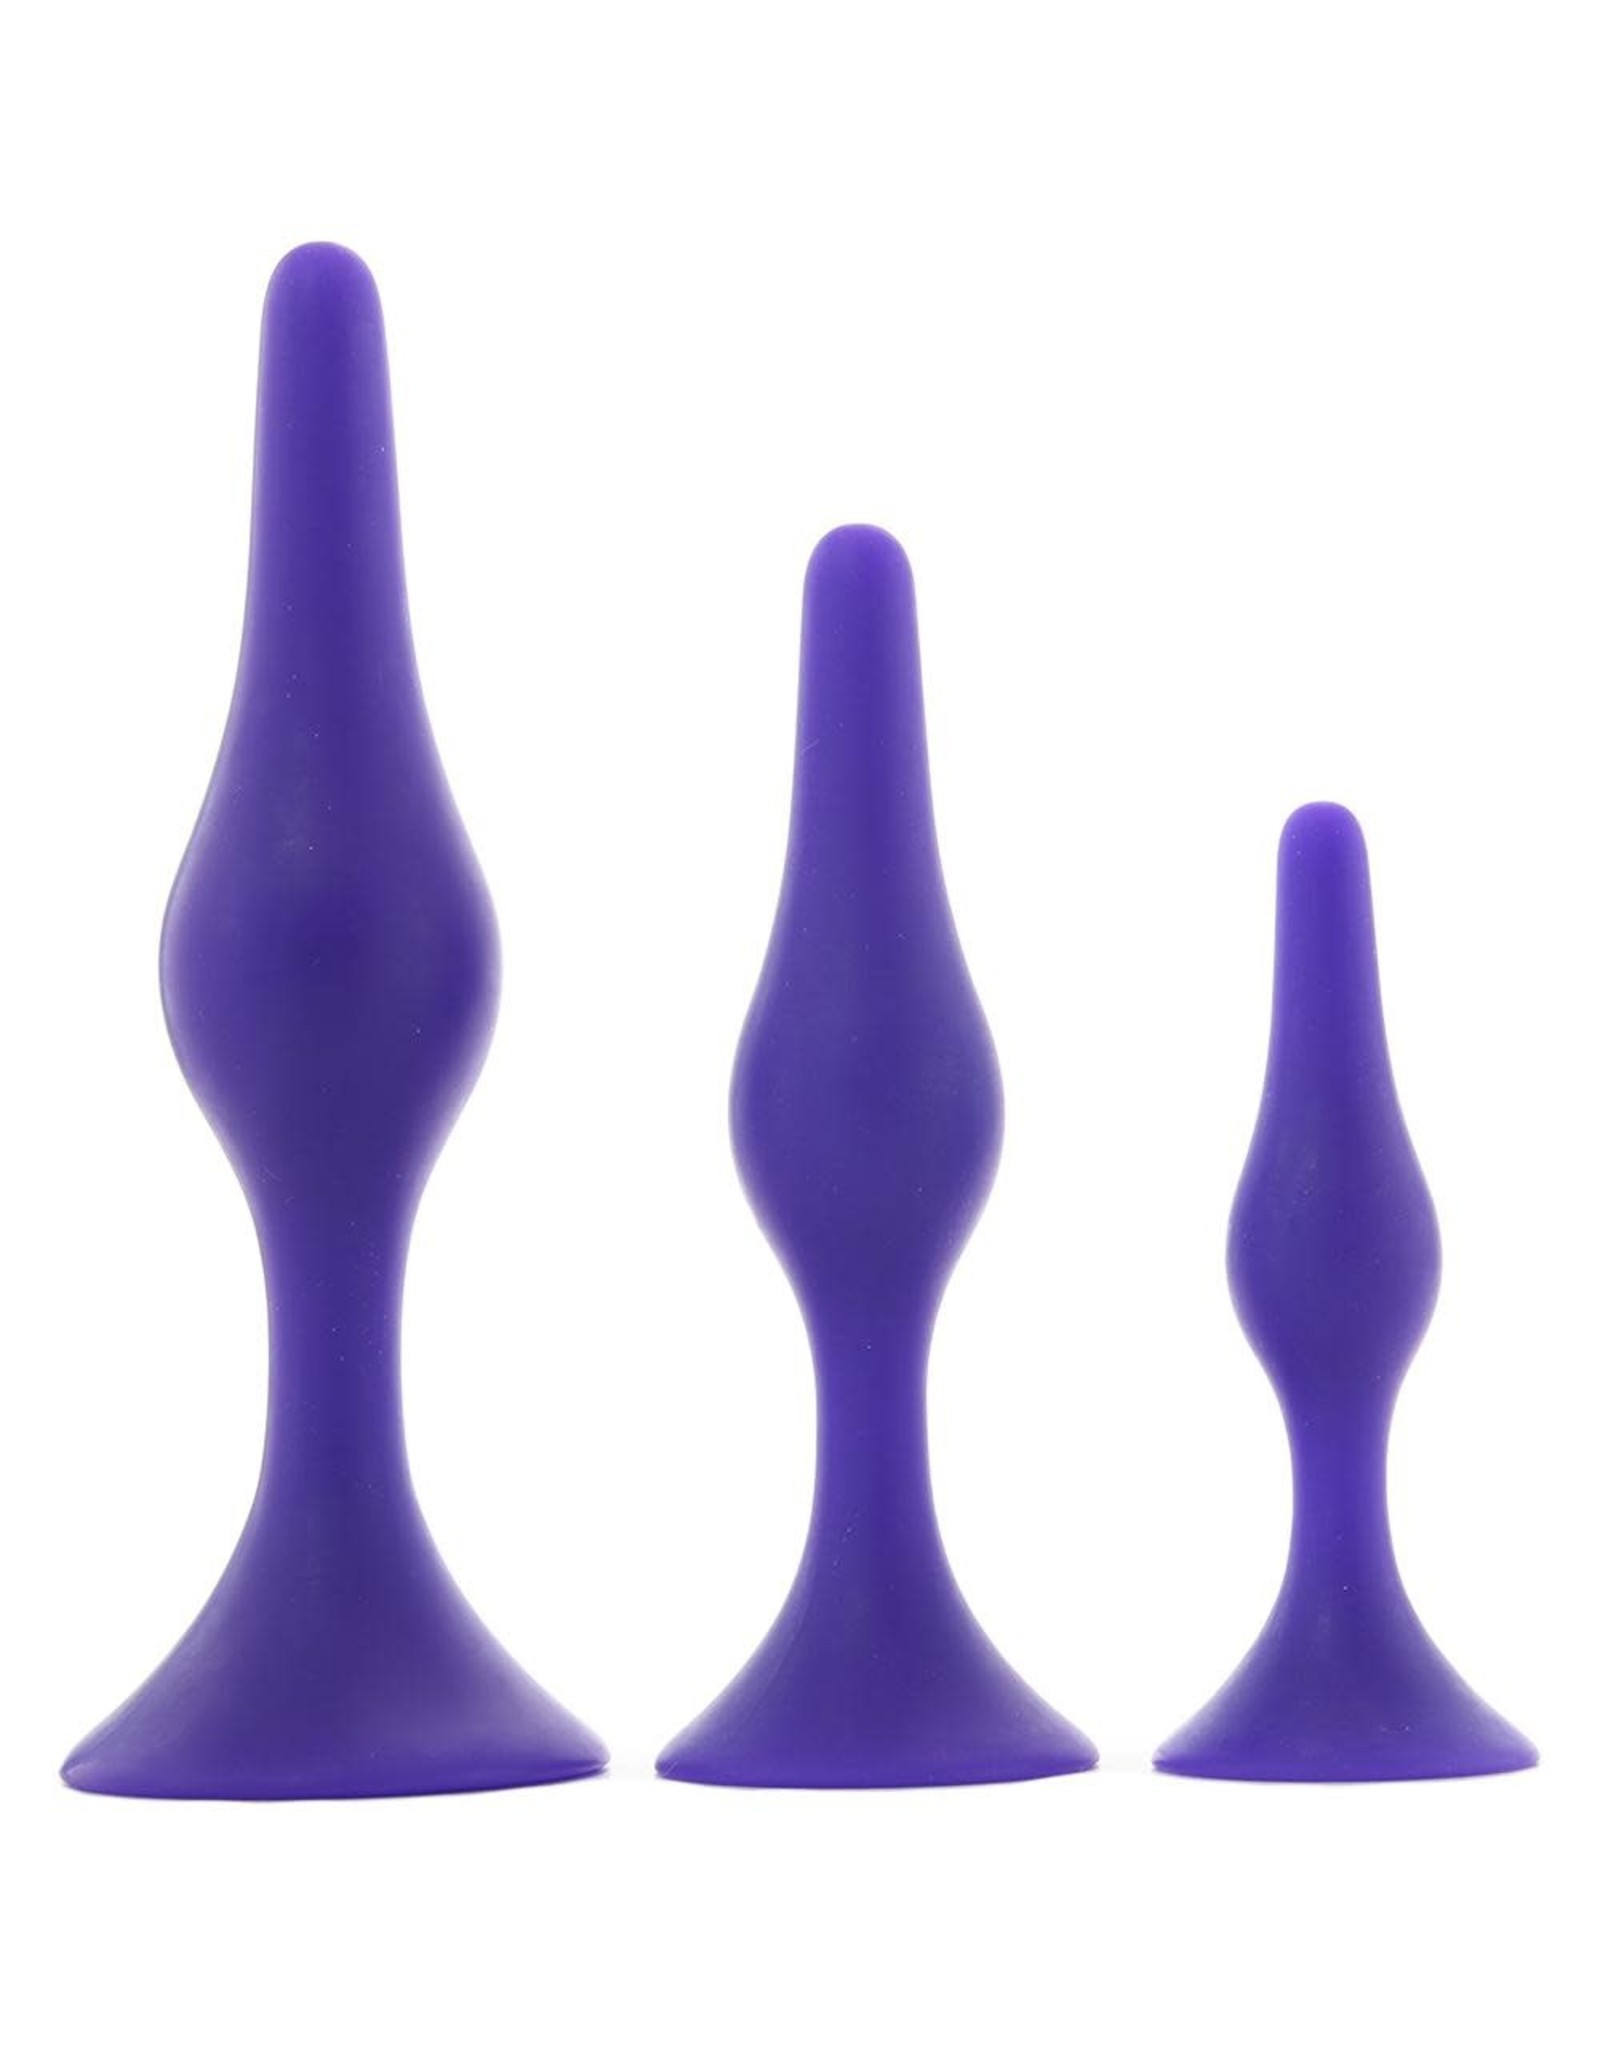 CALEXOTICS CALEXOTICS - BOOTY CALL - BOOTY TRAINER KIT - PURPLE